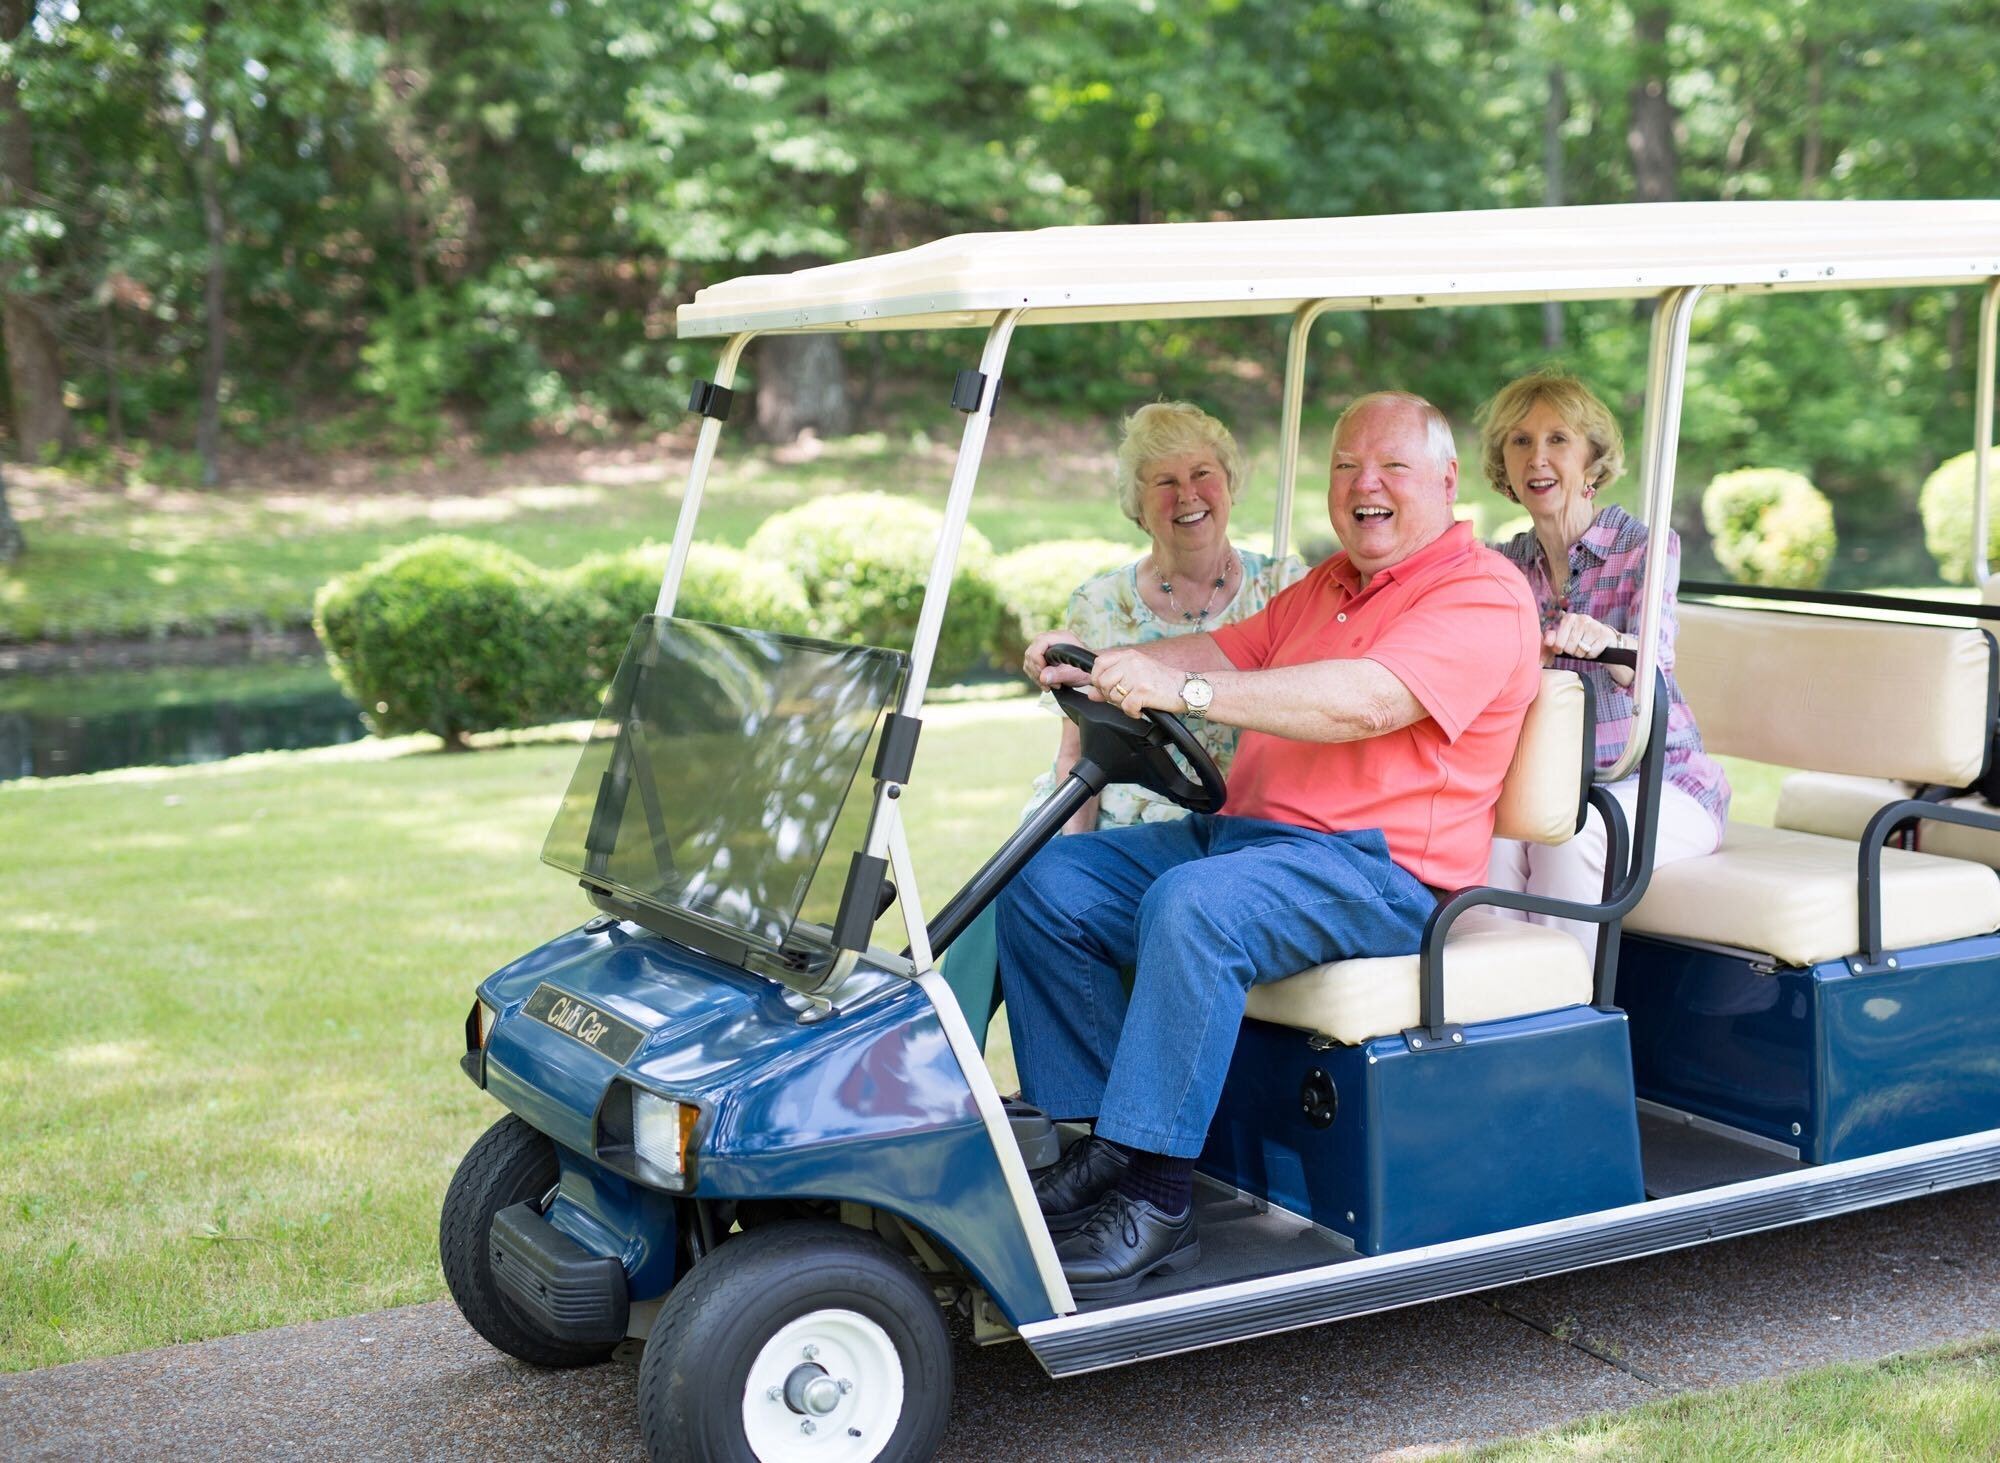 Residents of Kirby Pines ride in style across the expansive Hickory Hill campus. (Kirby Pines)